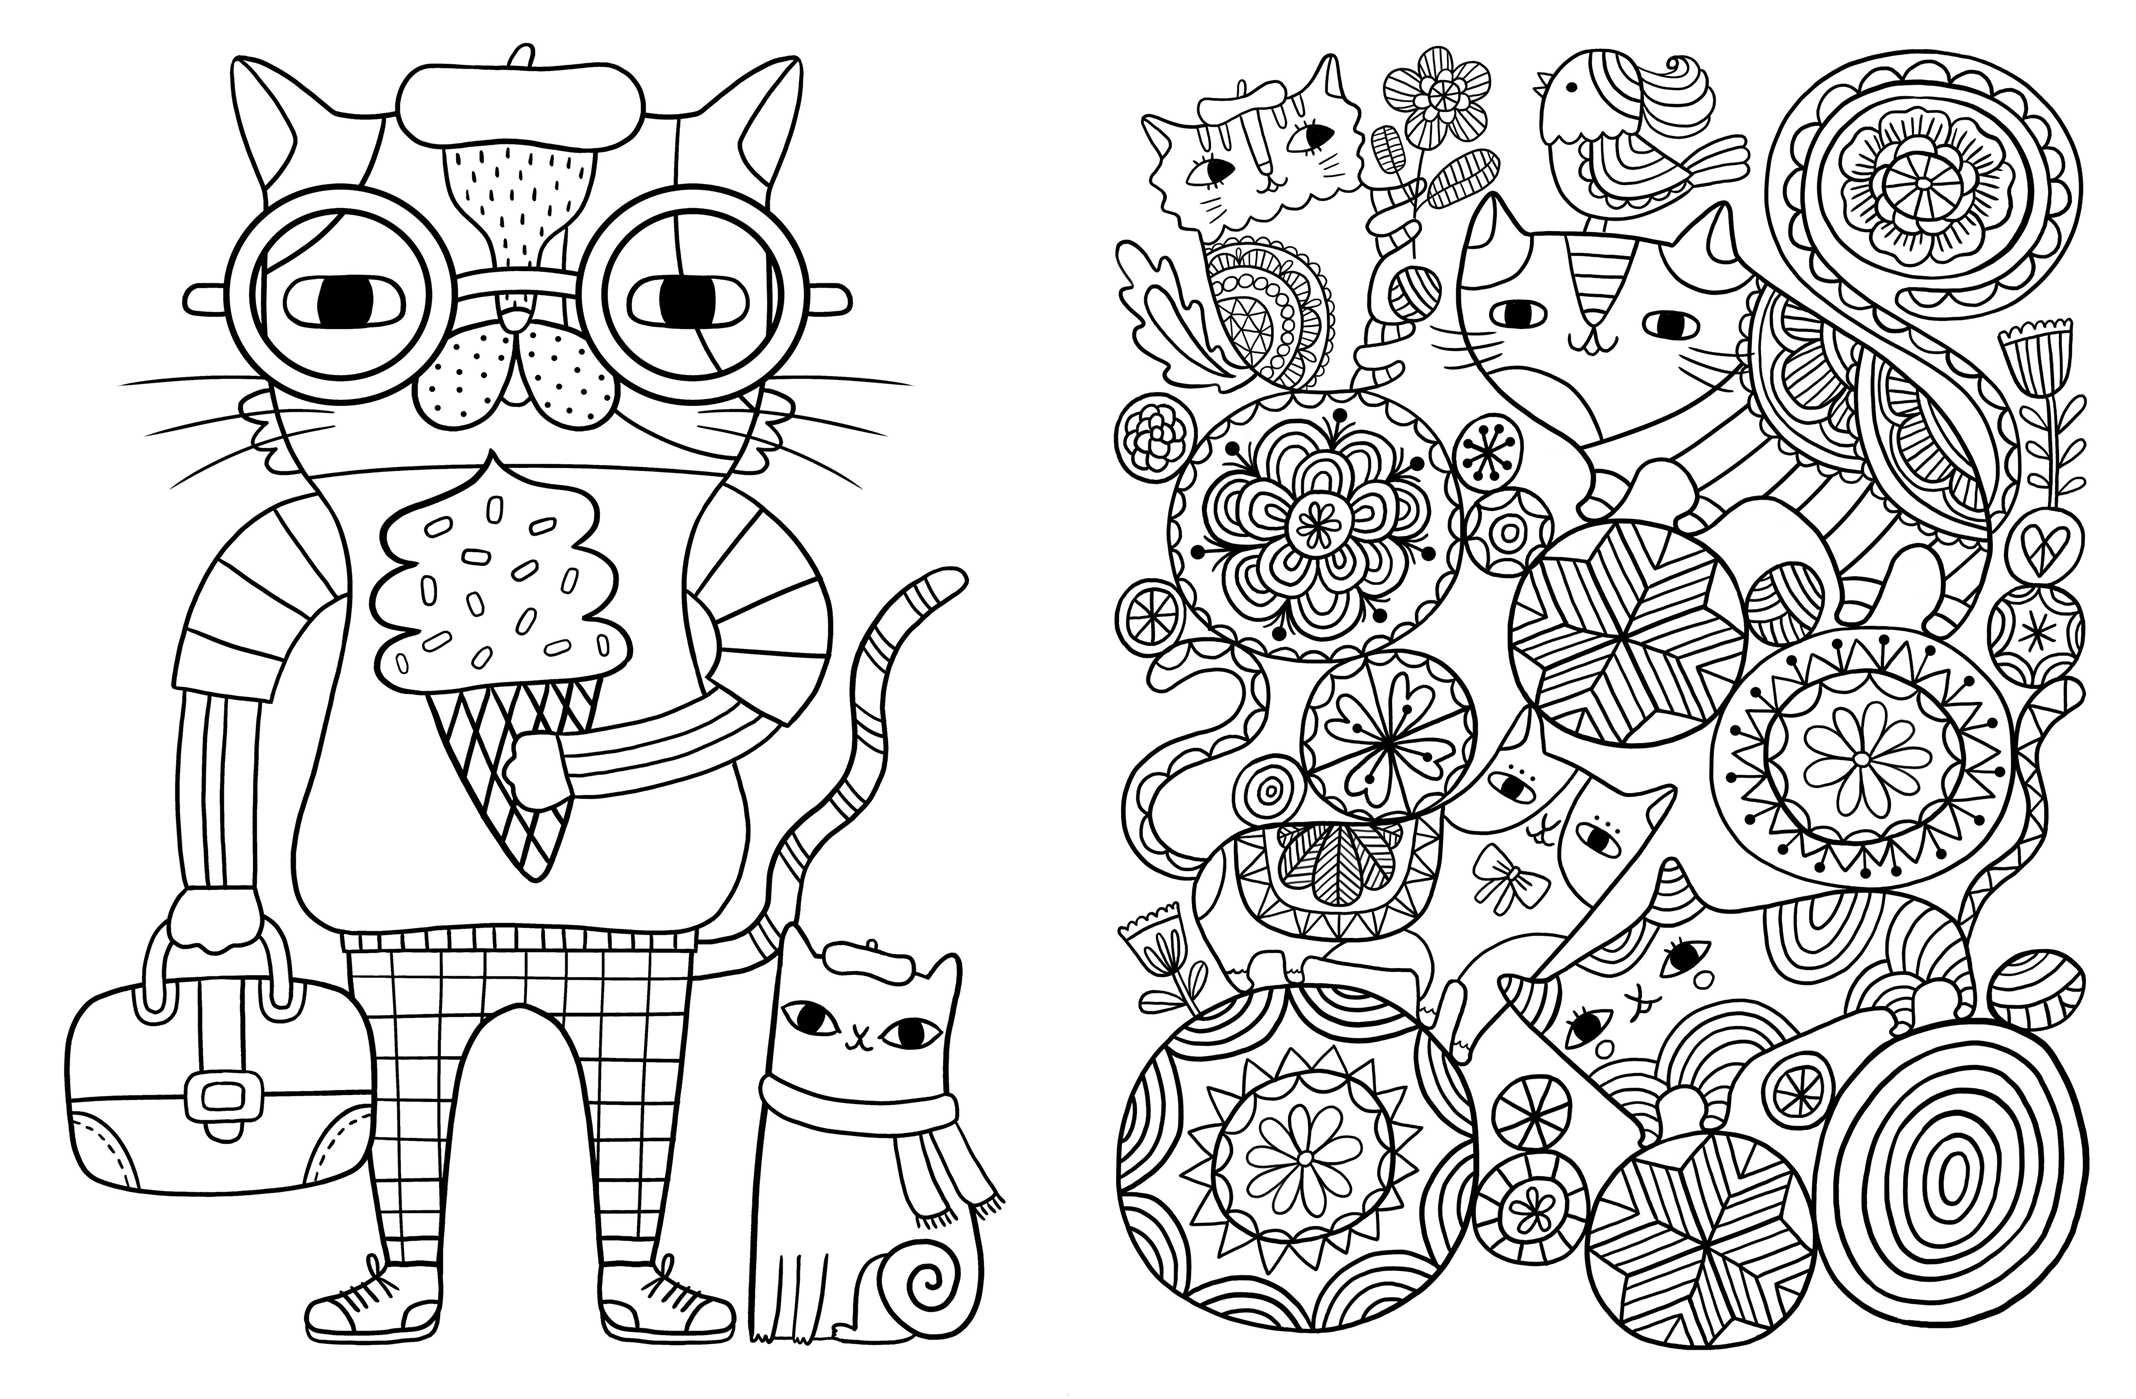 Coloring book download zip - Amazon Com Posh Adult Coloring Book Cats Kittens For Comfort Creativity Posh Coloring Books 9781449478735 Flora Chang Books